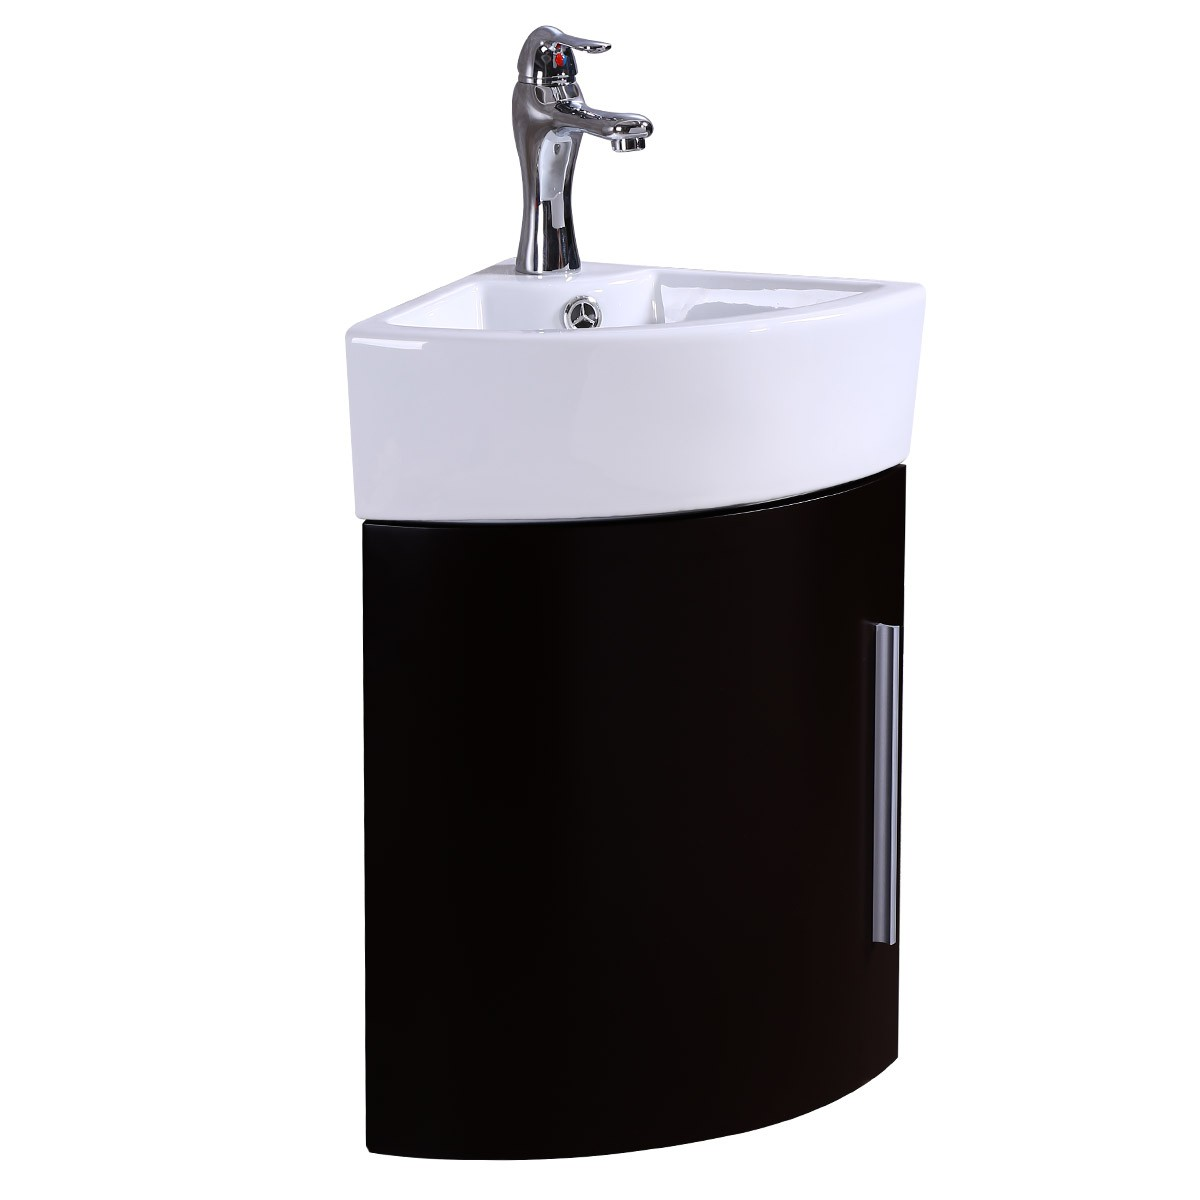 Bathroom Black Wall Mount Corner Cabinet Vanity White Sink with ...